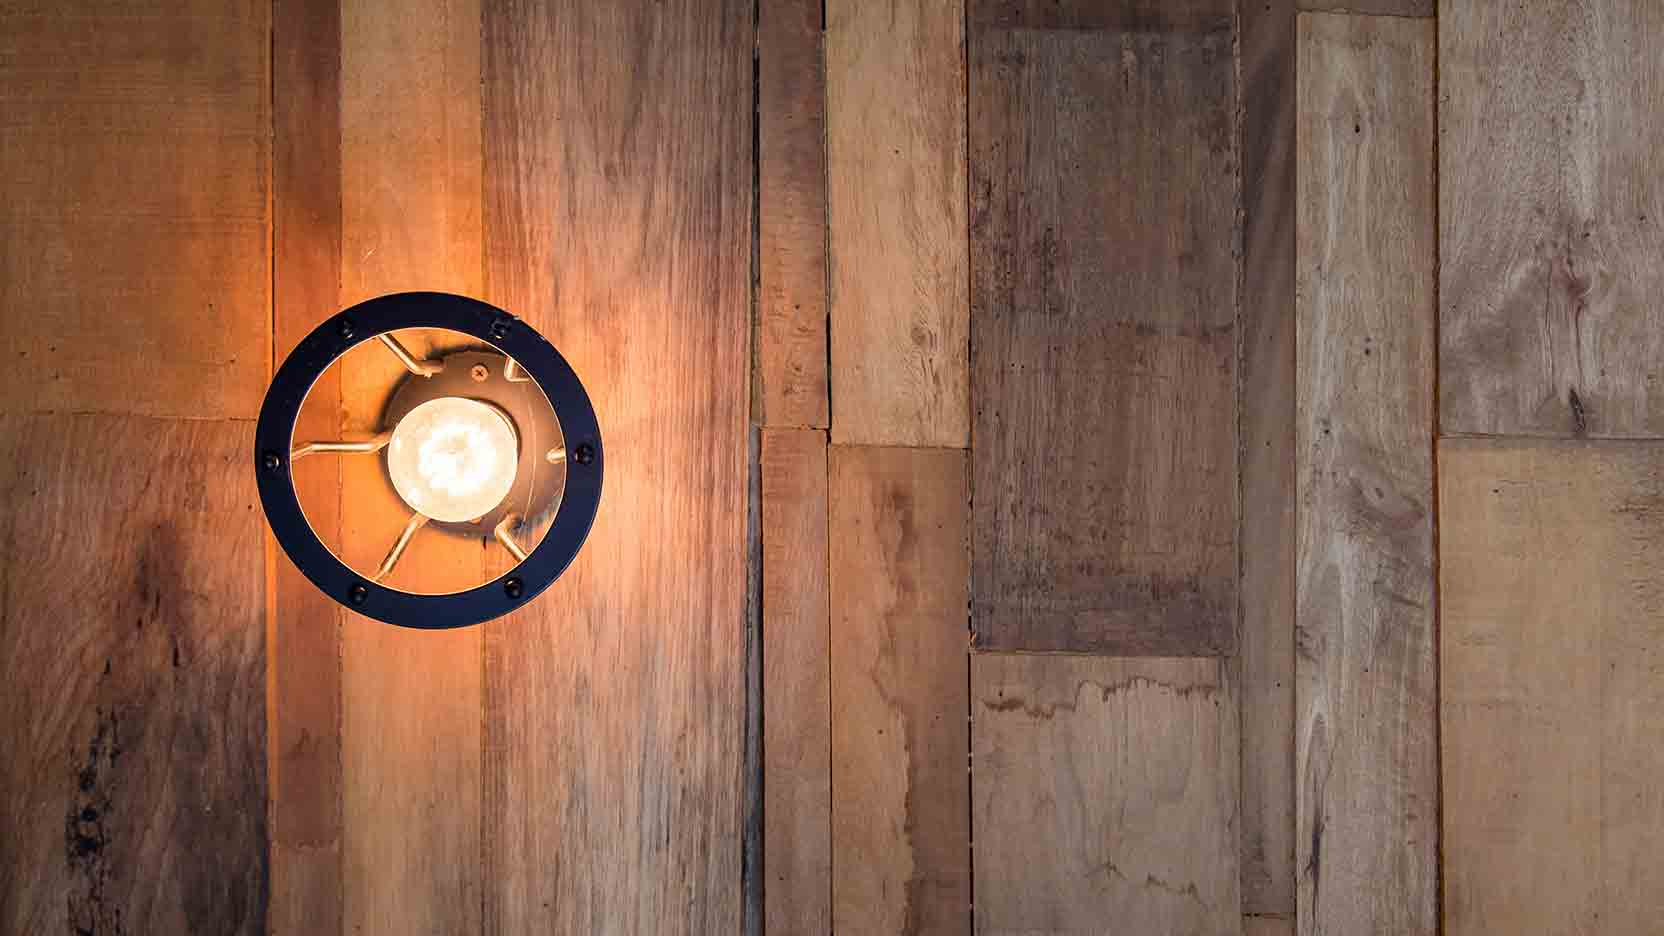 Smart building: this is not a light bulb